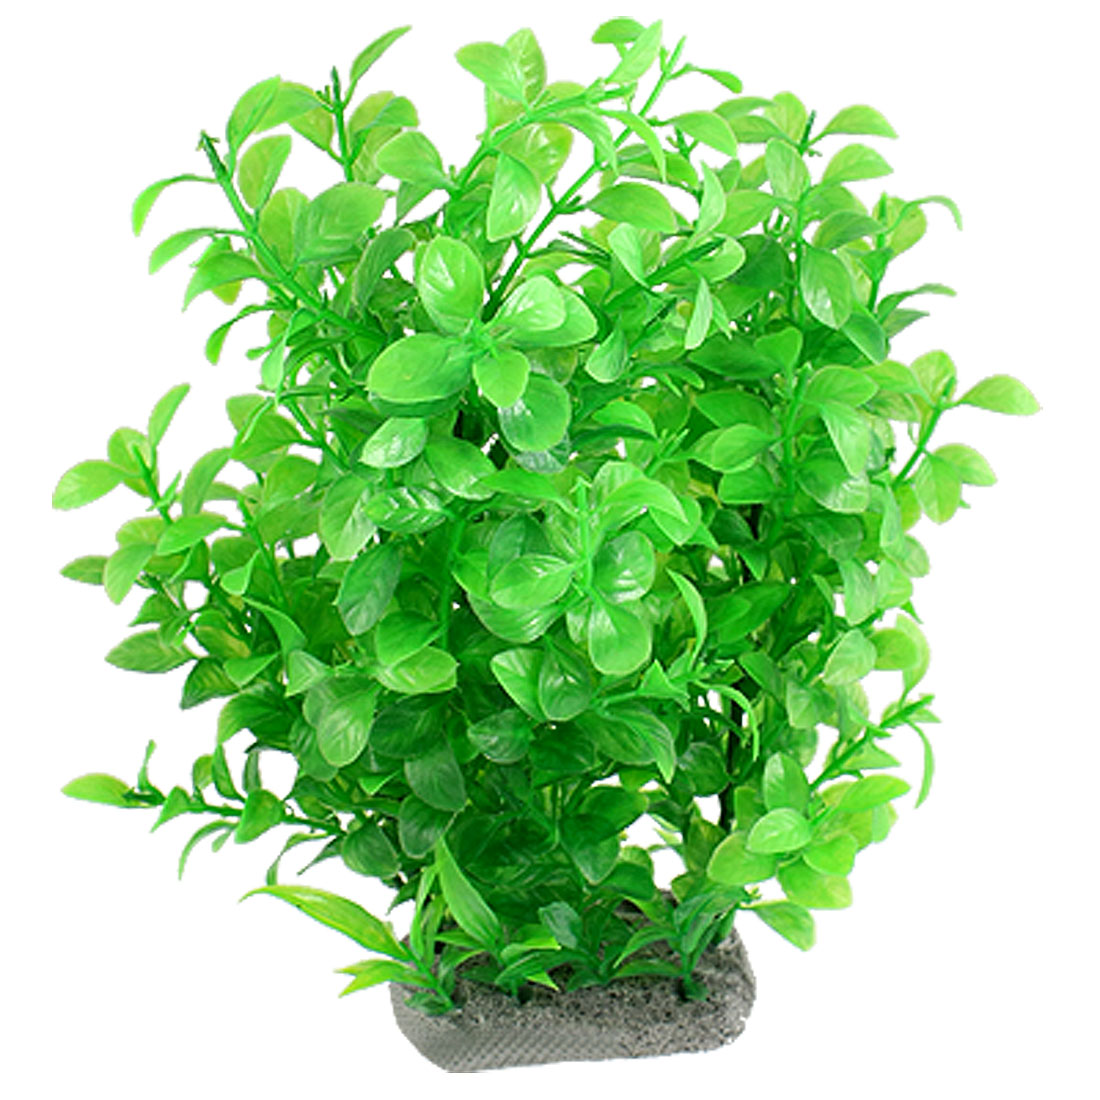 "Green Leaves 11.4"" Plastic Plant Ornament for Aquarium"